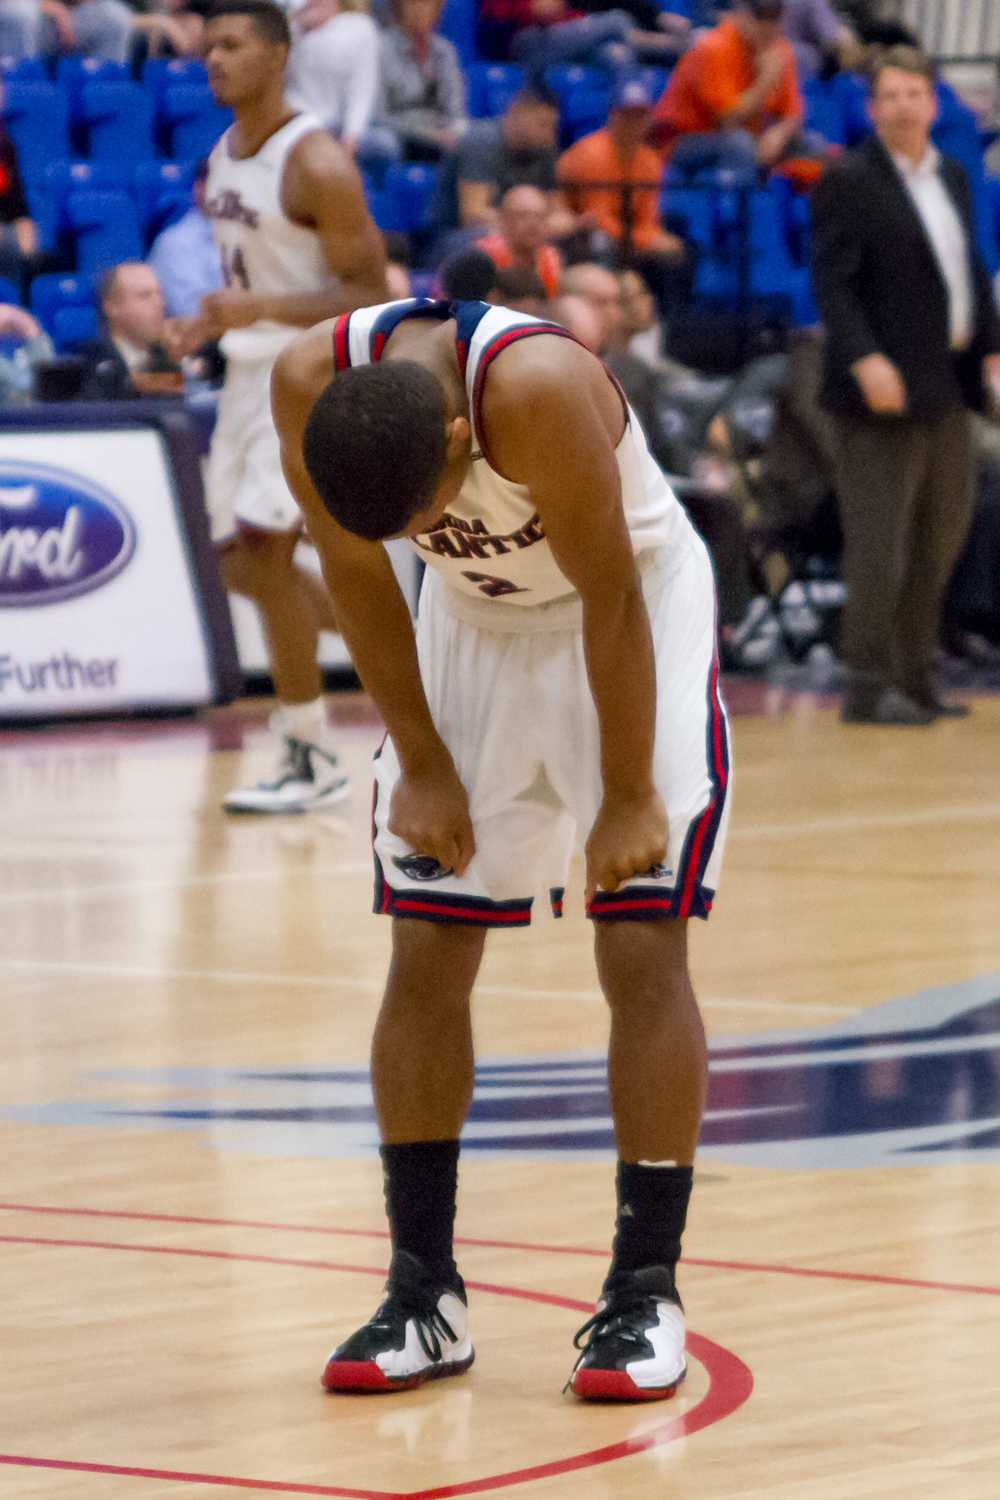 A fatigued Botley takes a breather. He played 35 of a possible 40 minutes in the loss to UTEP on Feb. 5.